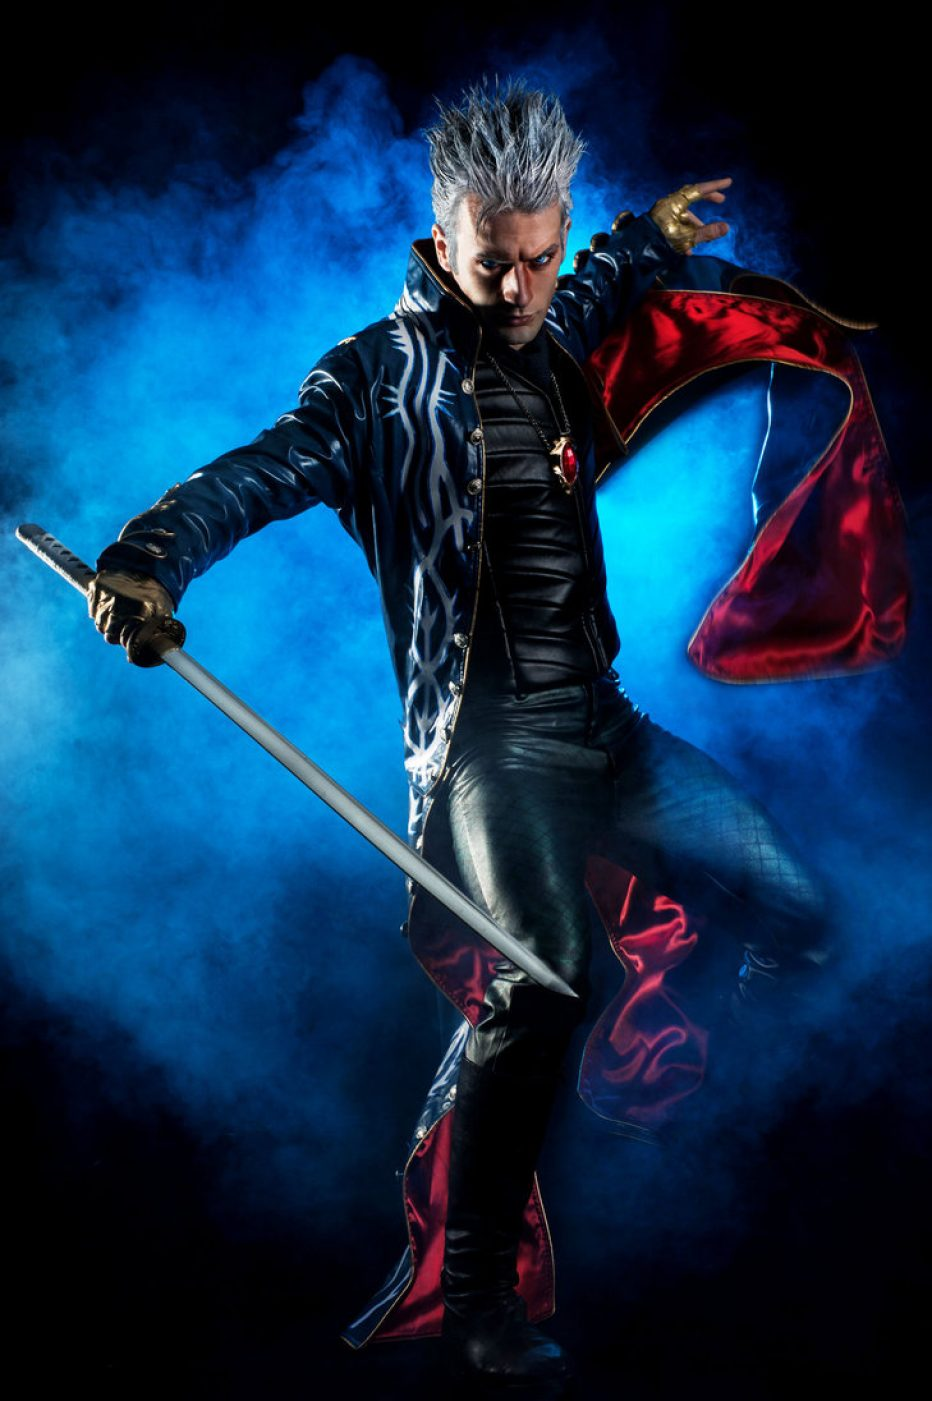 Devil-May-Cry-Vergil-Cosplay-Gamers-Heroes-1.jpg